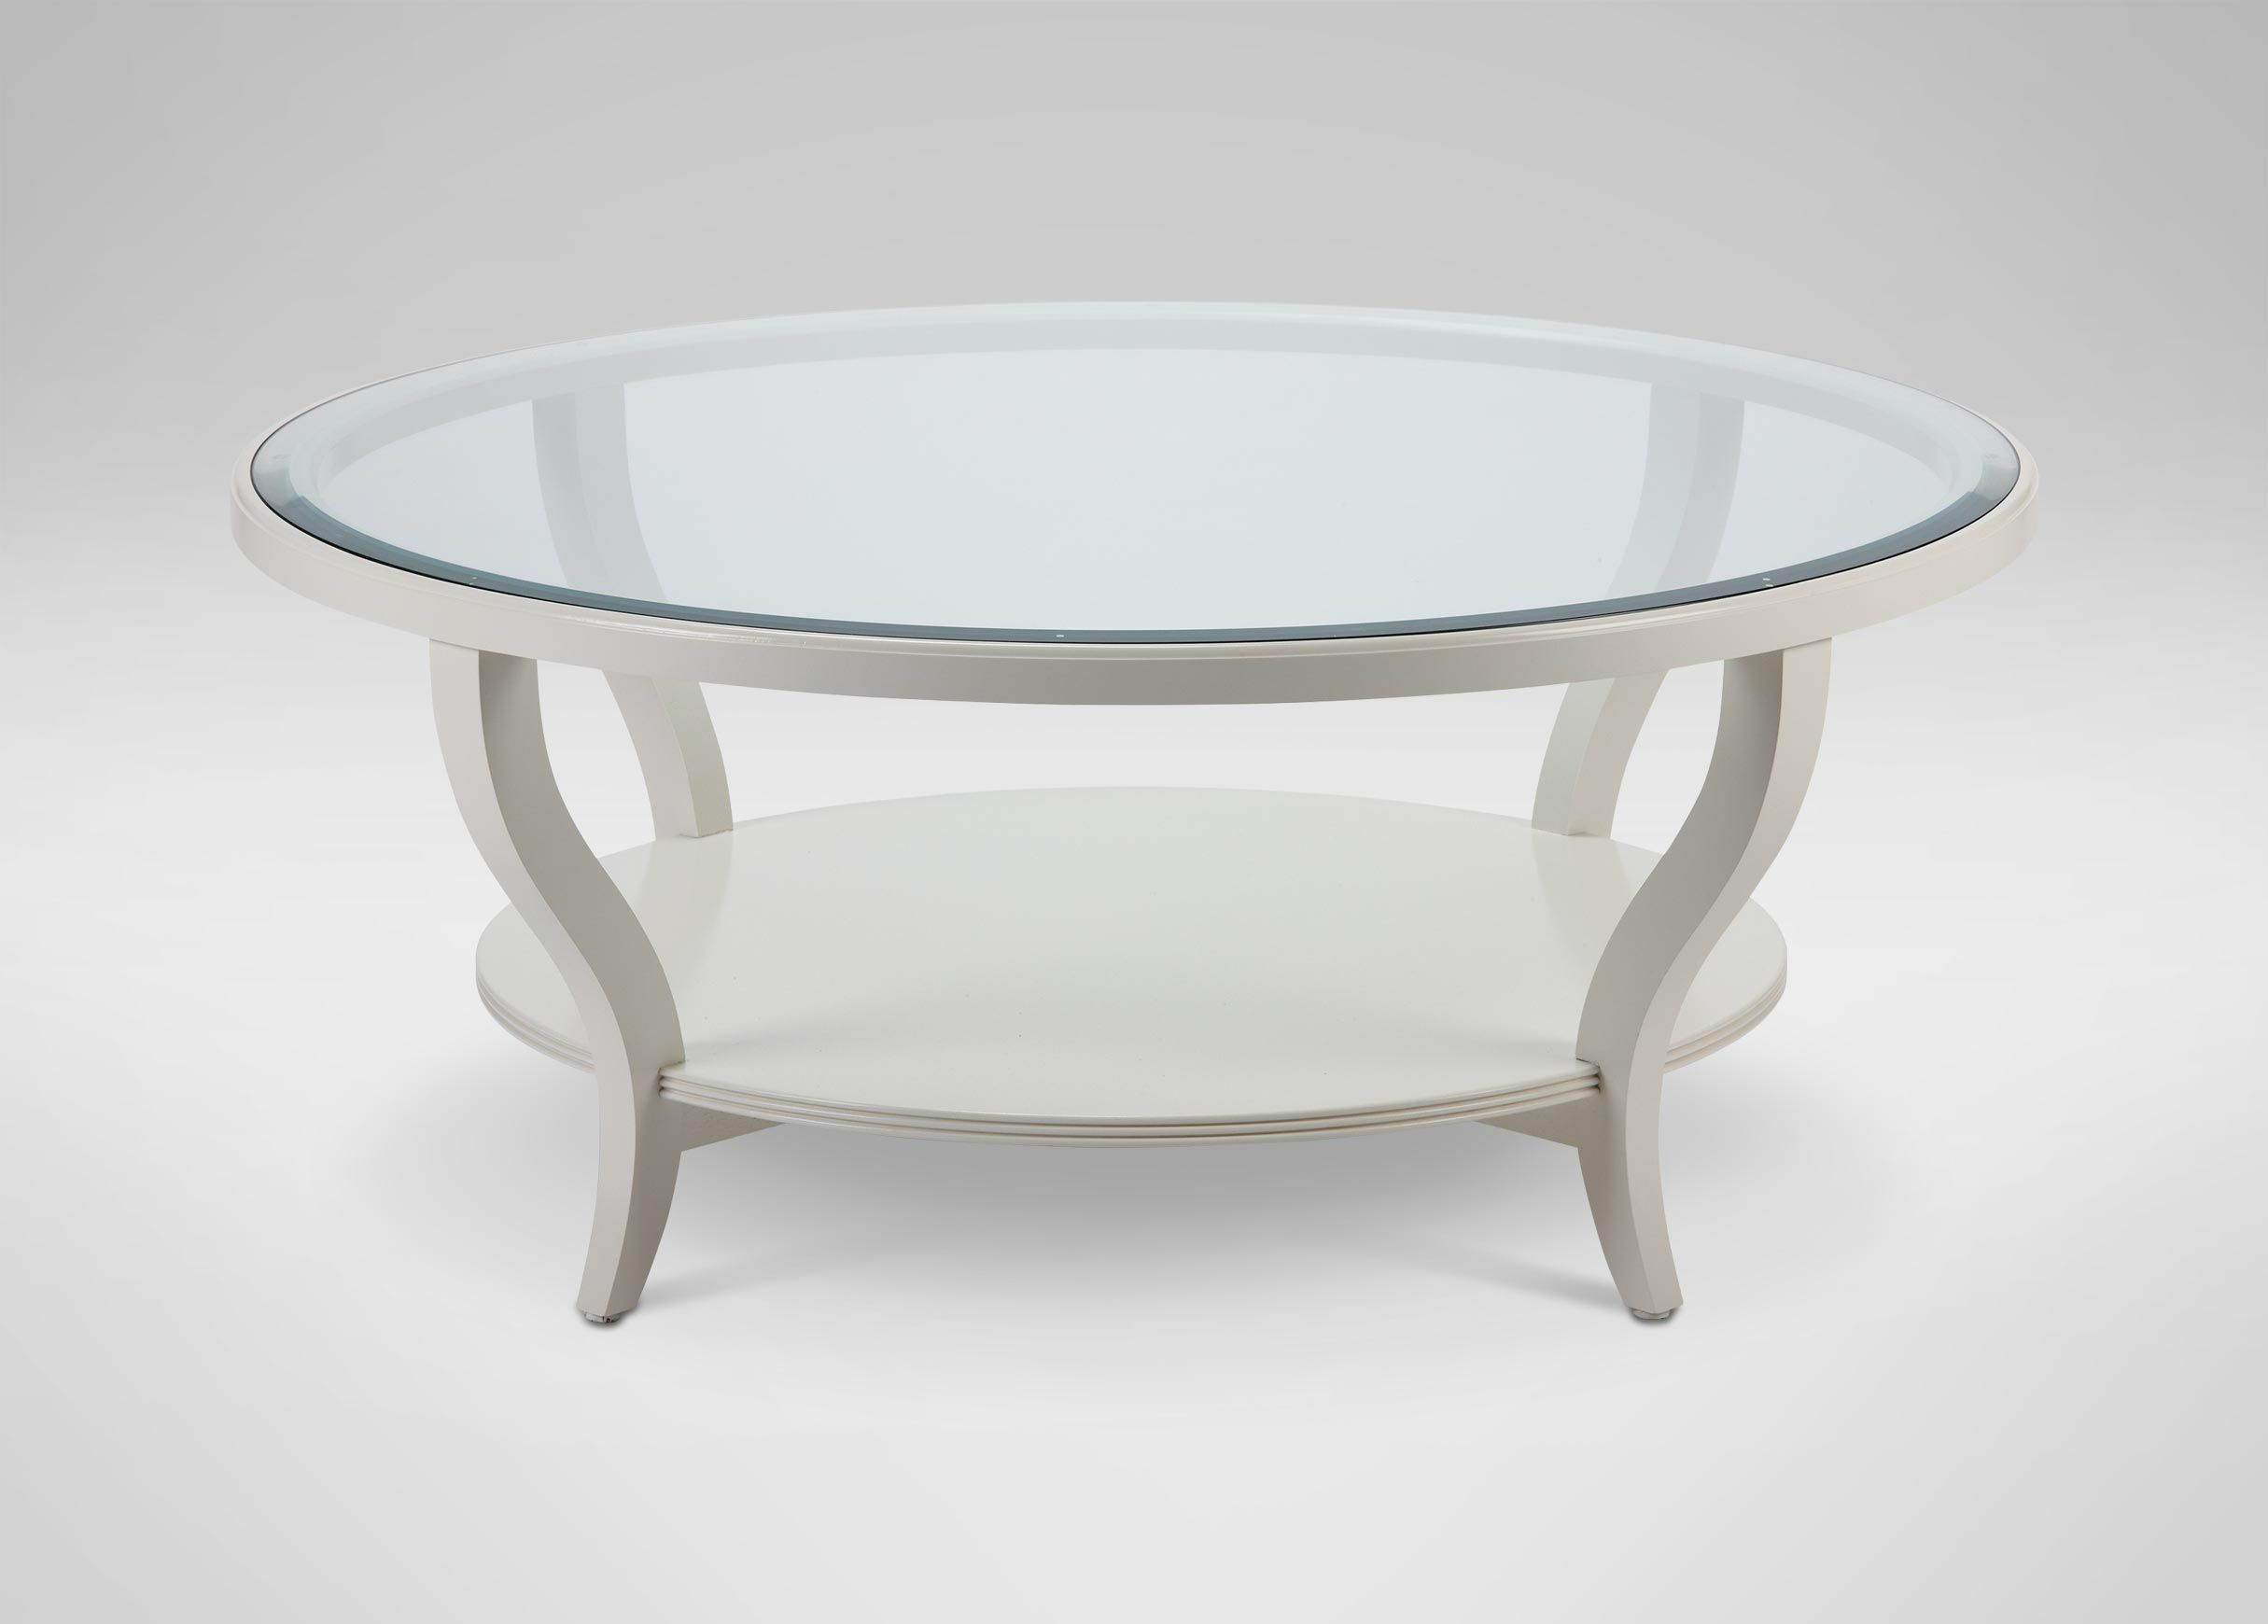 Cirque Coffee Table Coffee Table Living Room Coffee Table Table [ 1740 x 2430 Pixel ]